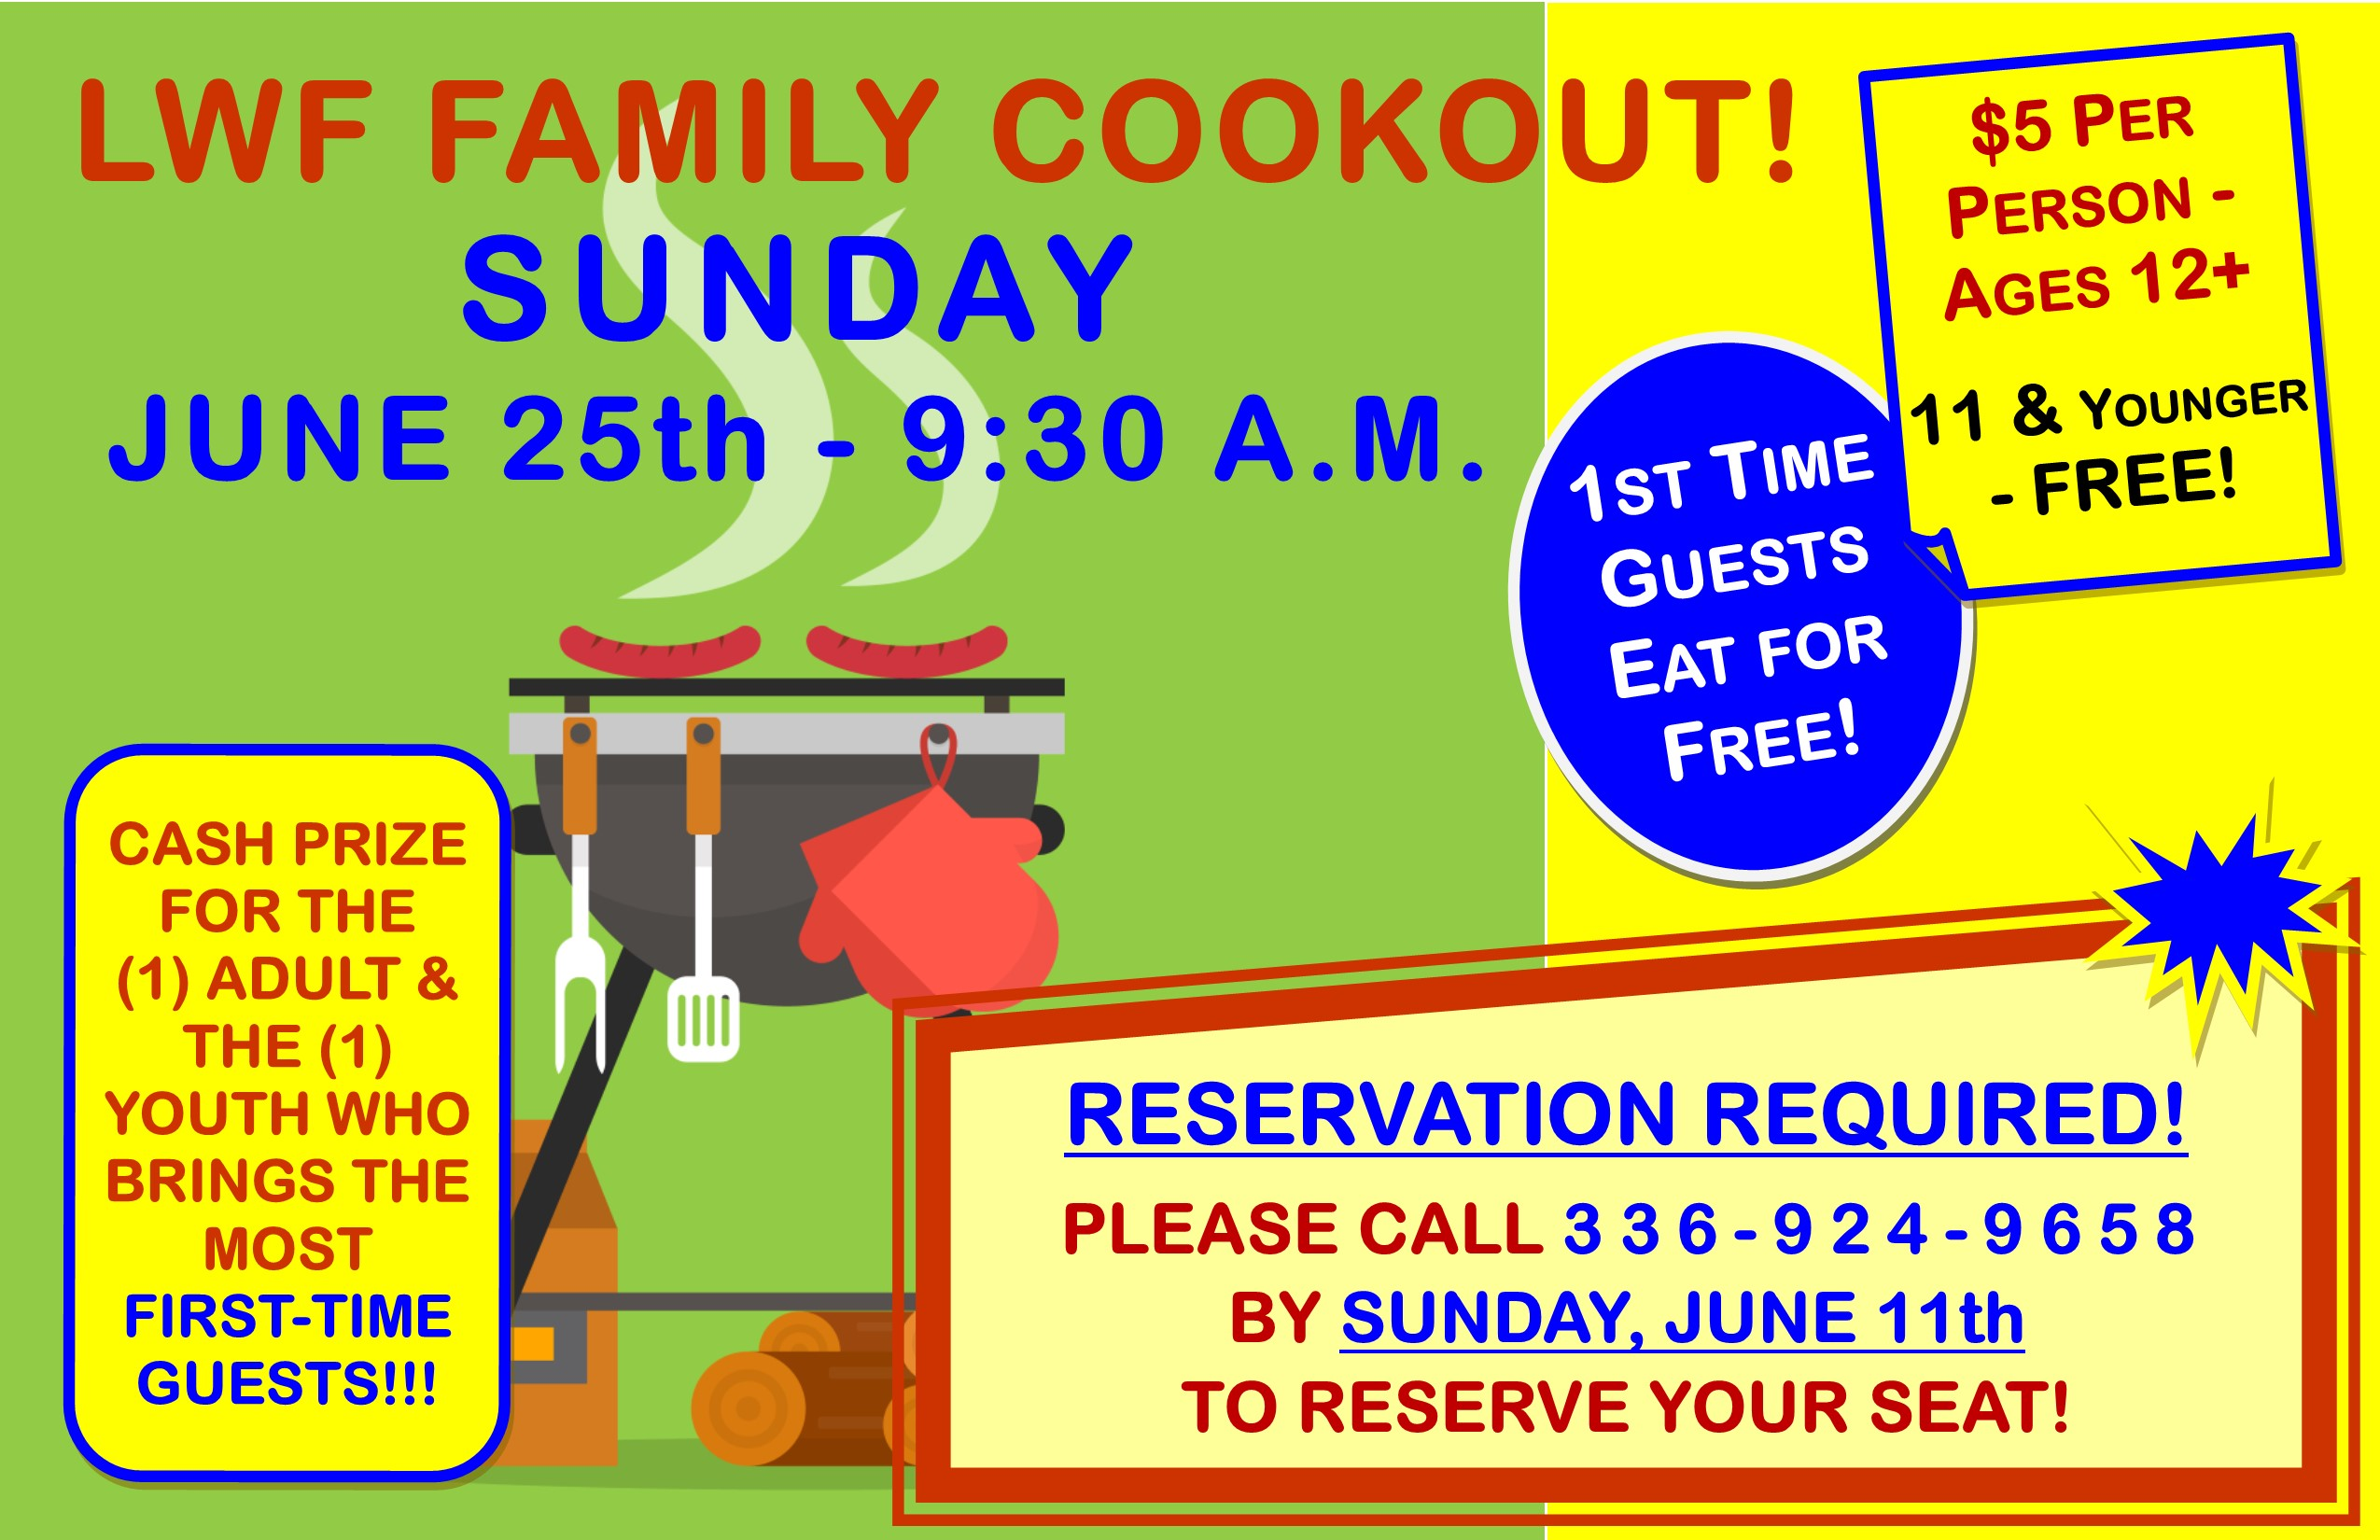 cookout invite web slider image 06 25 2017 living word fellowship